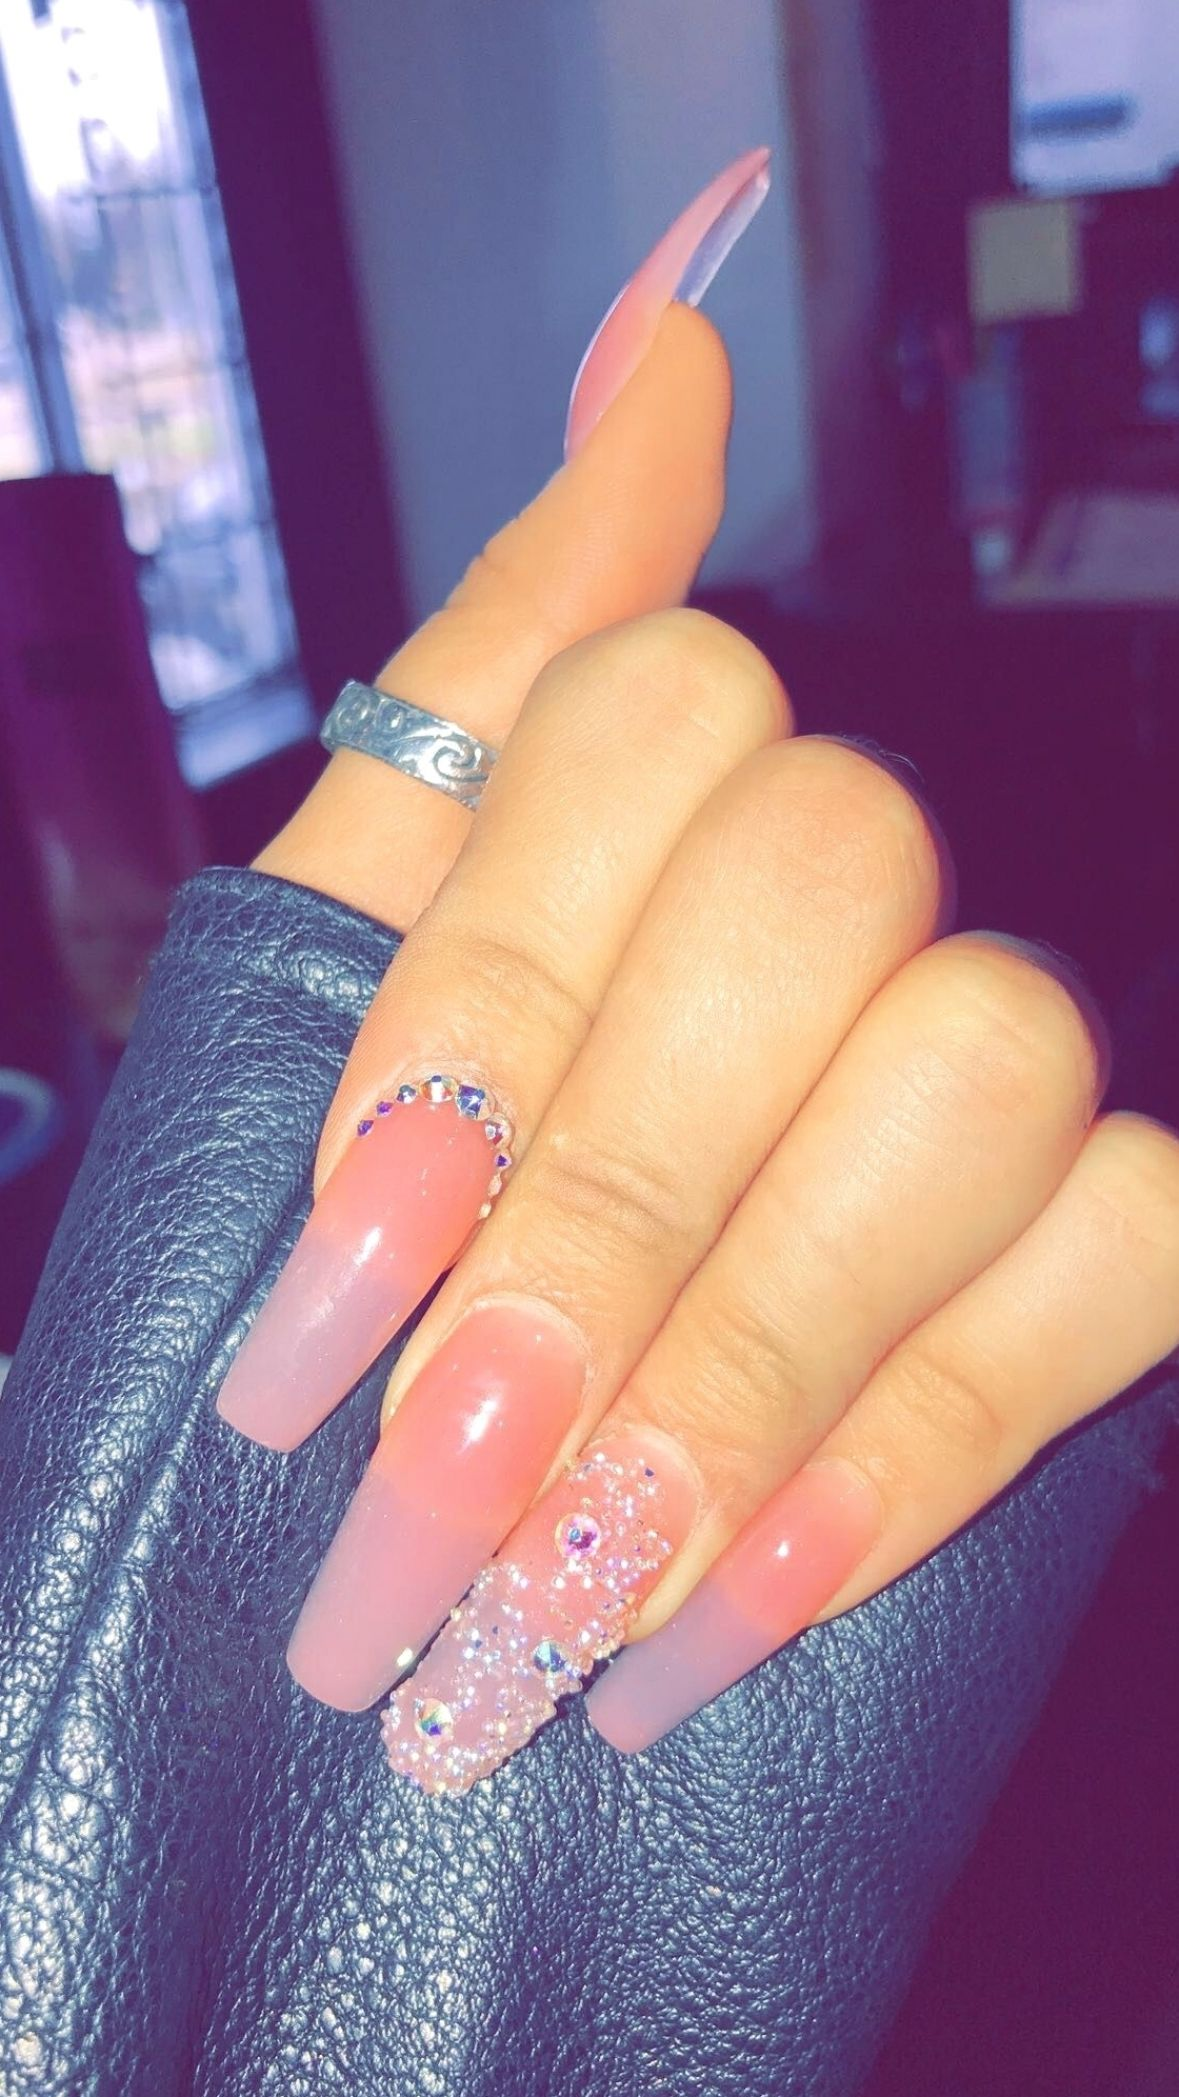 How To Live With Acrylic Nails 15 Beautiful Acrylic Nail Designs Beauty Home In 2021 Pink Acrylic Nails Dark Pink Nails Clear Acrylic Nails